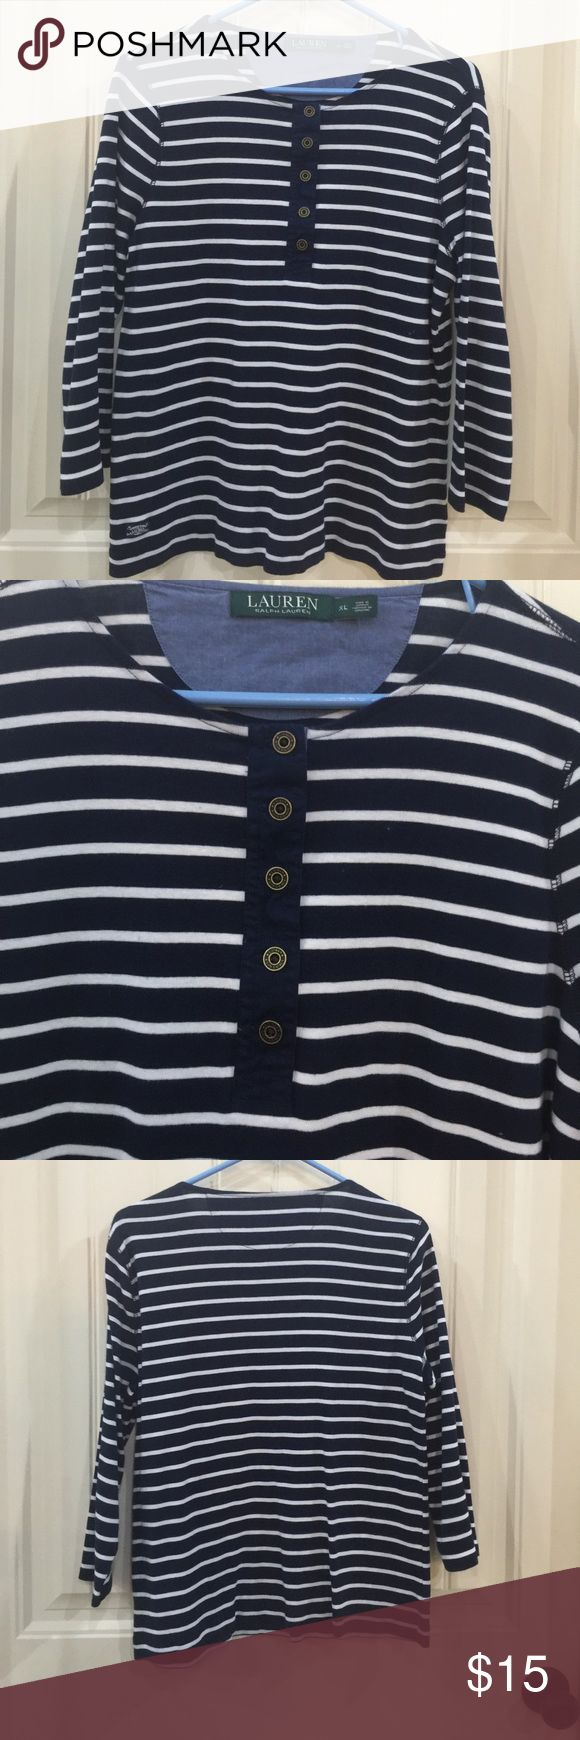 Ralph Lauren Nautical Blouse Ralph Lauren Navy and White Nautical Blouse, 3/4 Sleeve, great condition! Ralph Lauren Tops Blouses